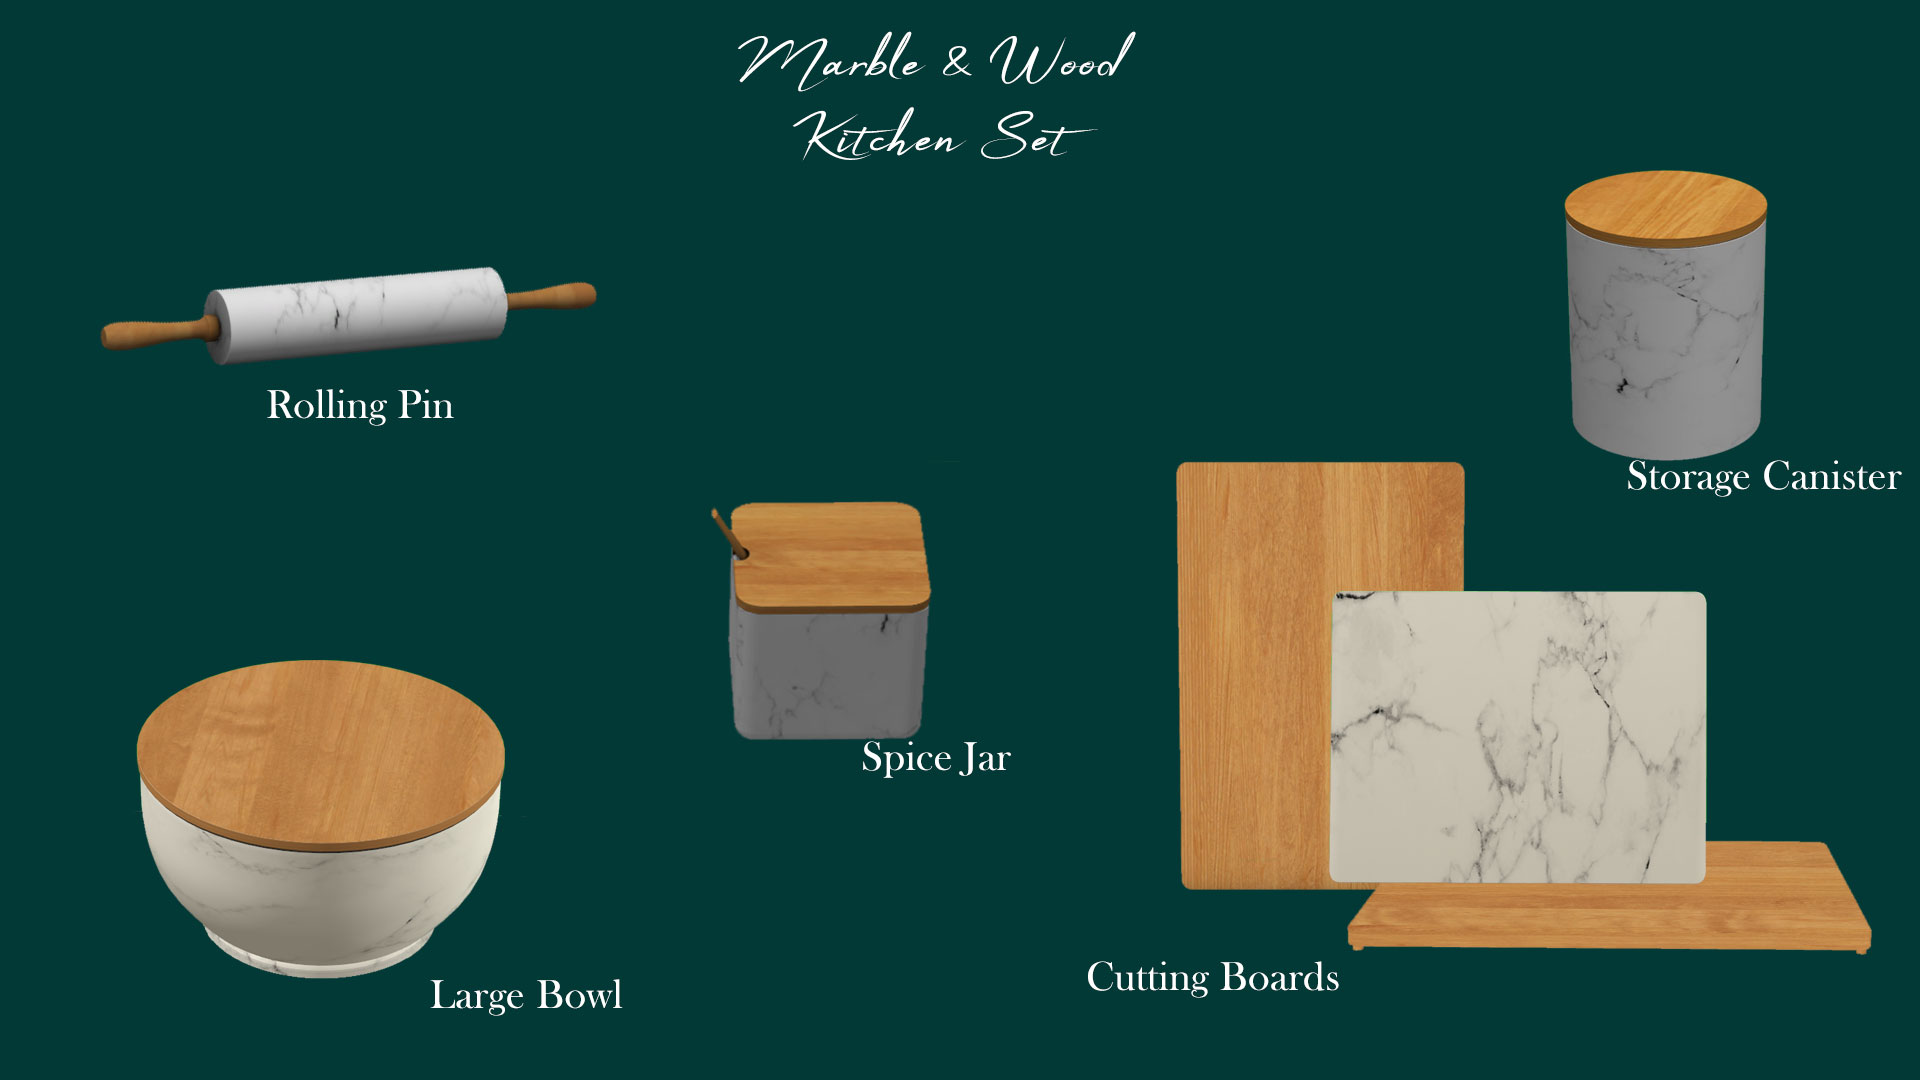 Marble and Wood Kitchen Set, high quality sims 4 cc, sunkissedlilacs, free sims 4 furniture, sims 4 custom content,